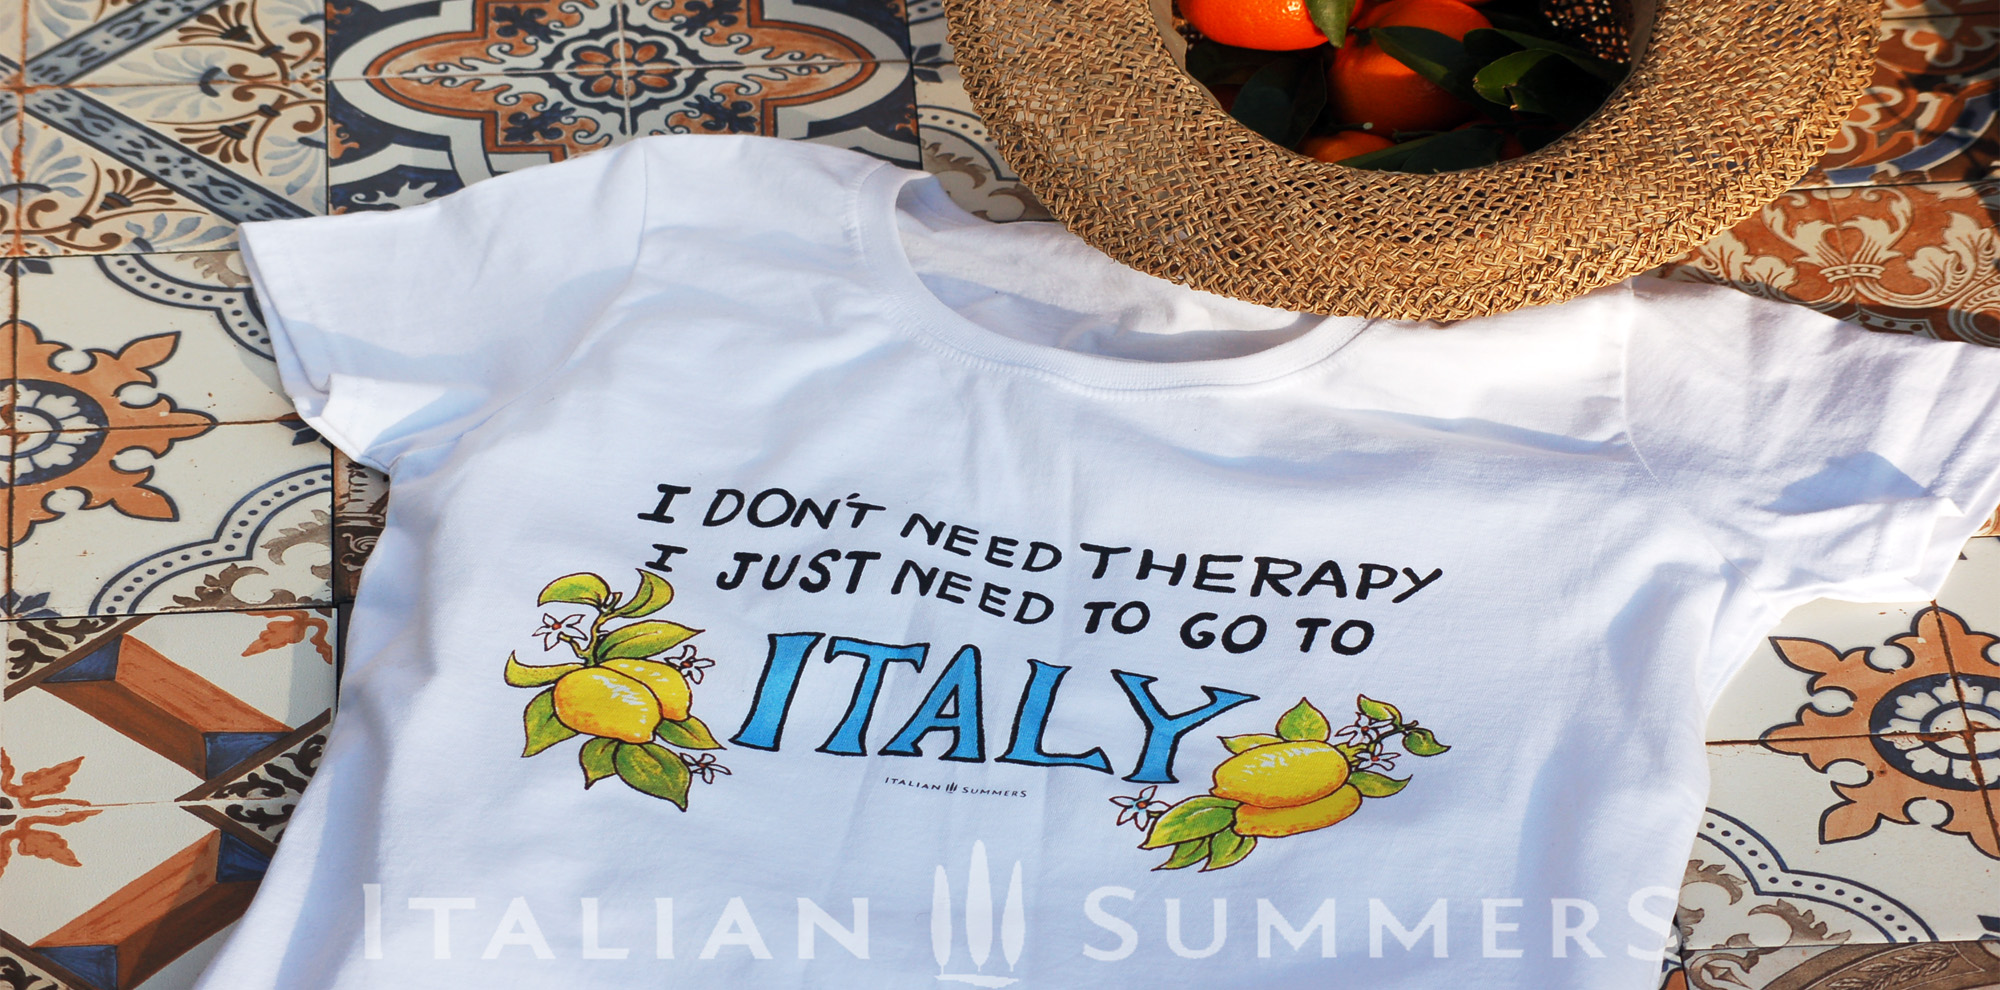 I Don't need therapy I just need ITALY T-shirts by Italian Summers